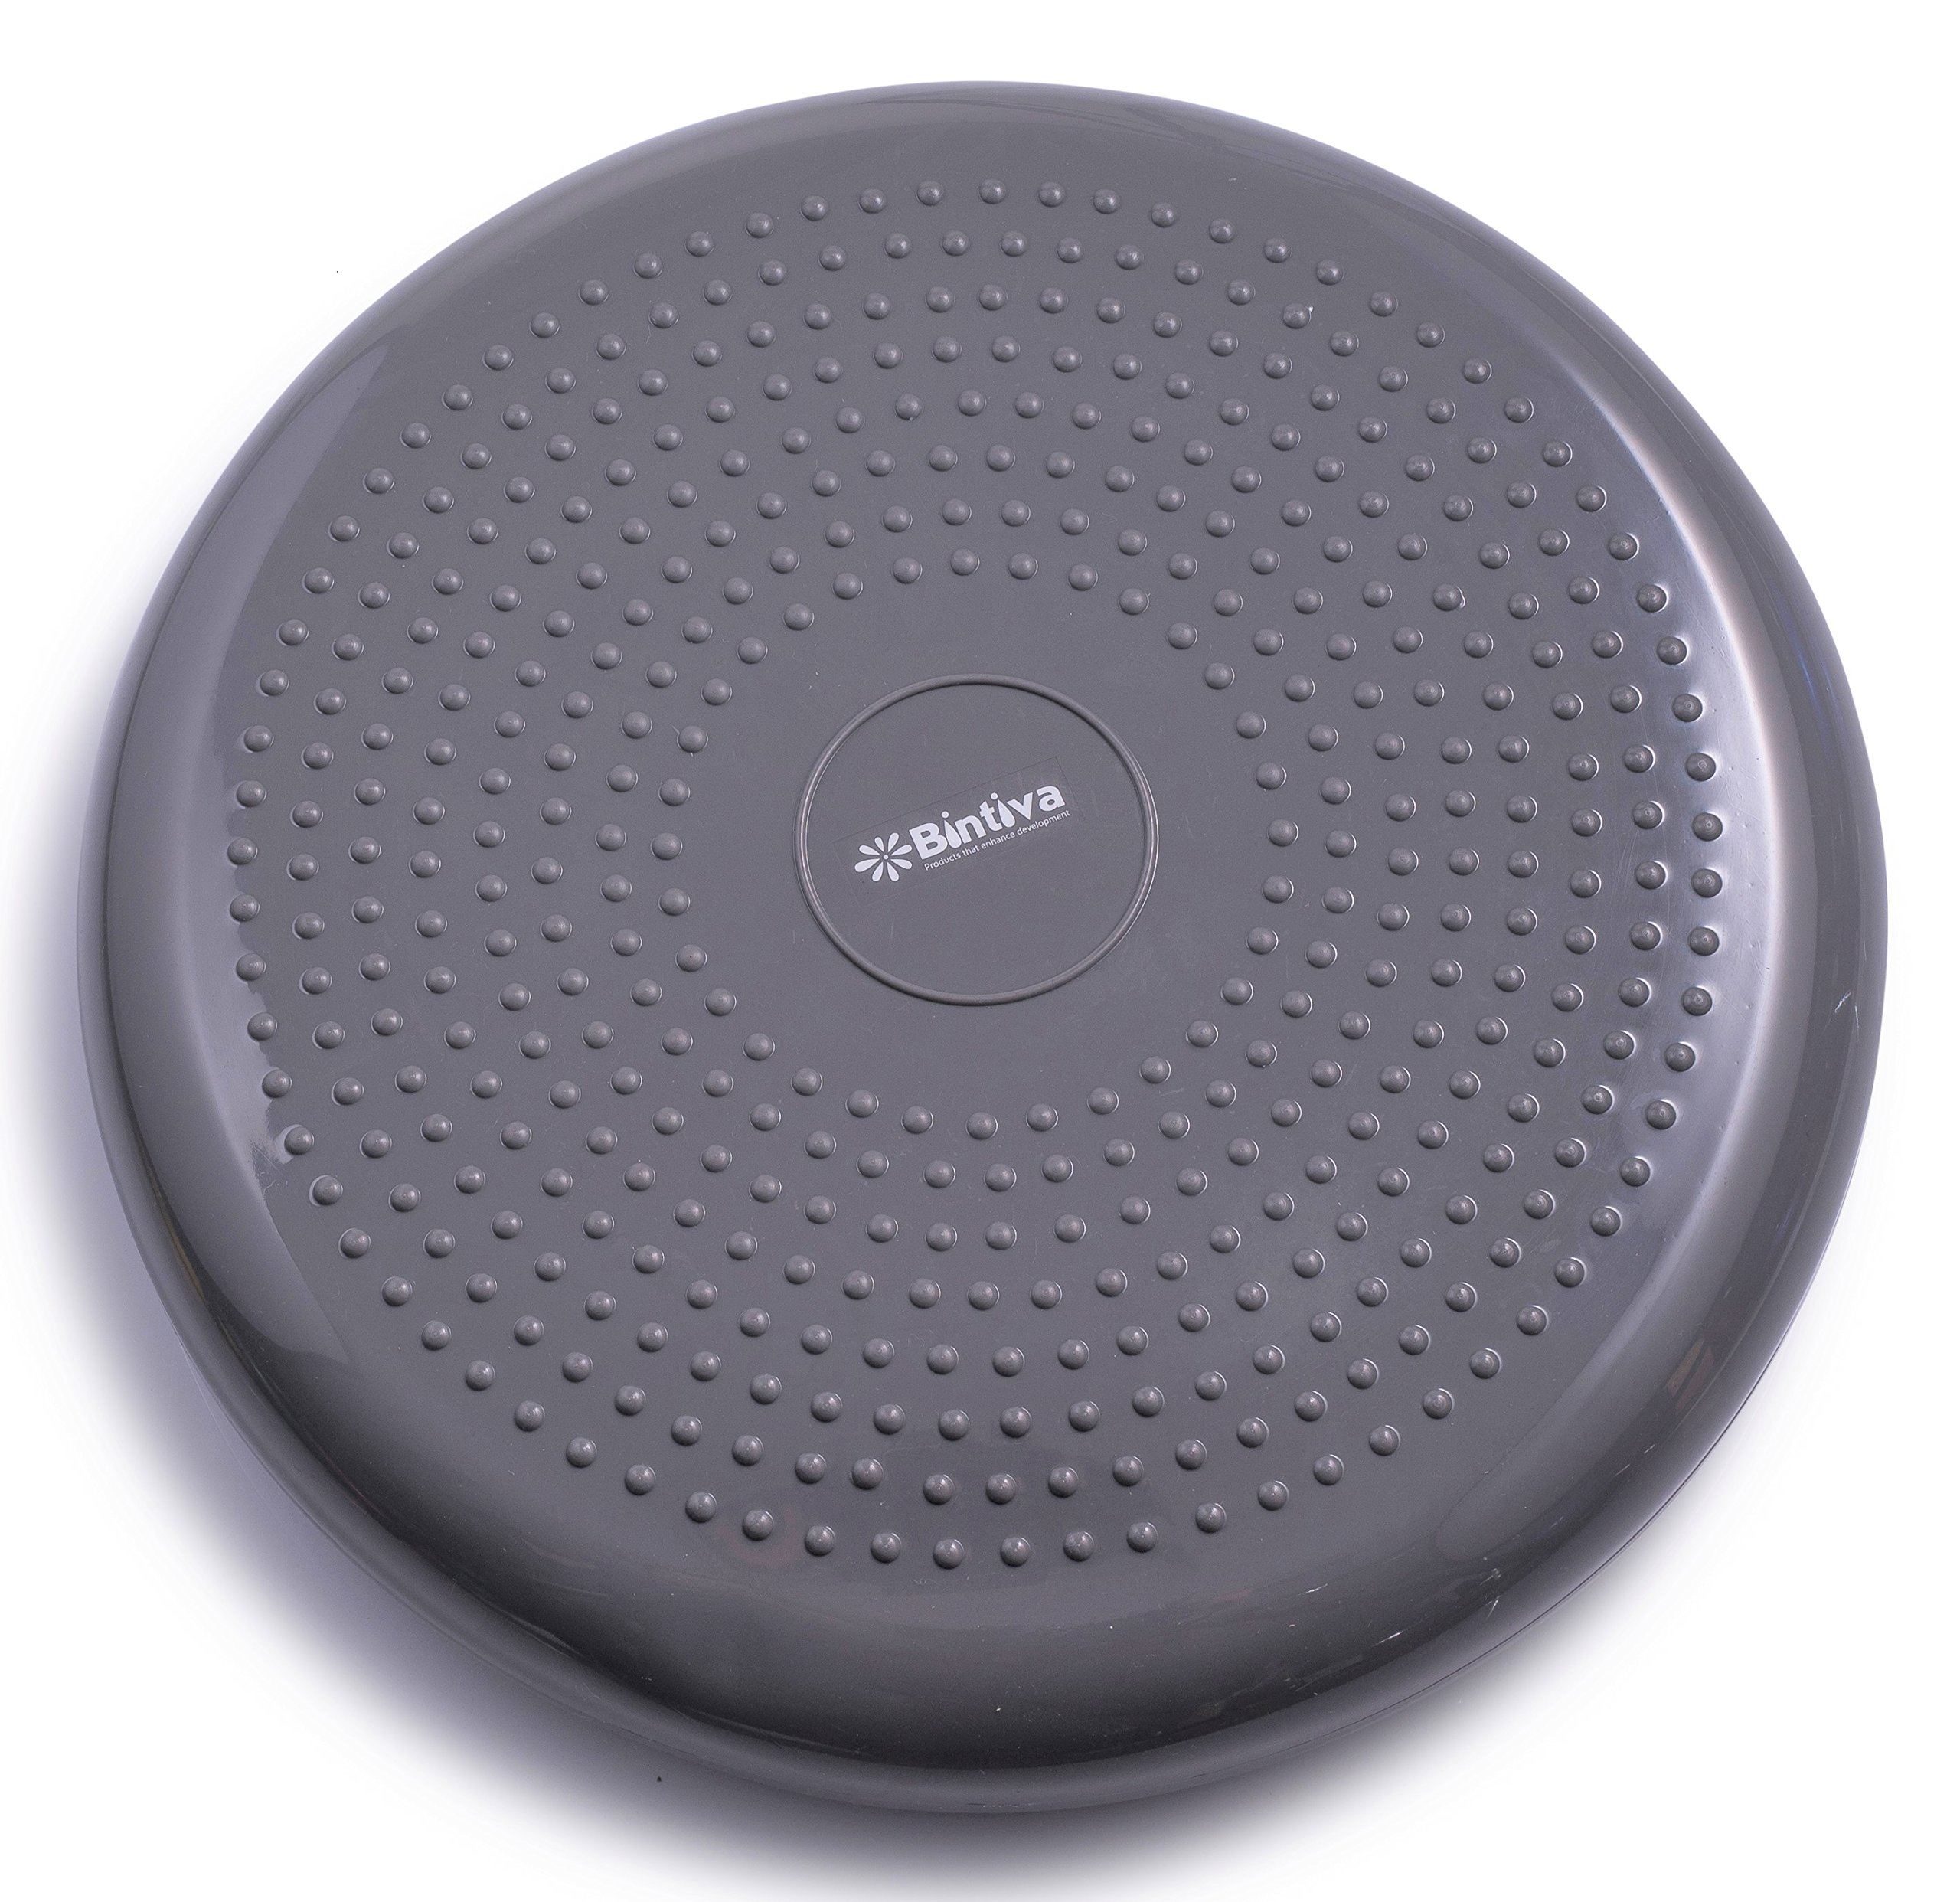 bintiva Inflated Stability Wobble Cushion, Including Free Pump/Exercise Fitness Core Balance Disc, Gray, 13 inches(33 cm) by bintiva (Image #1)